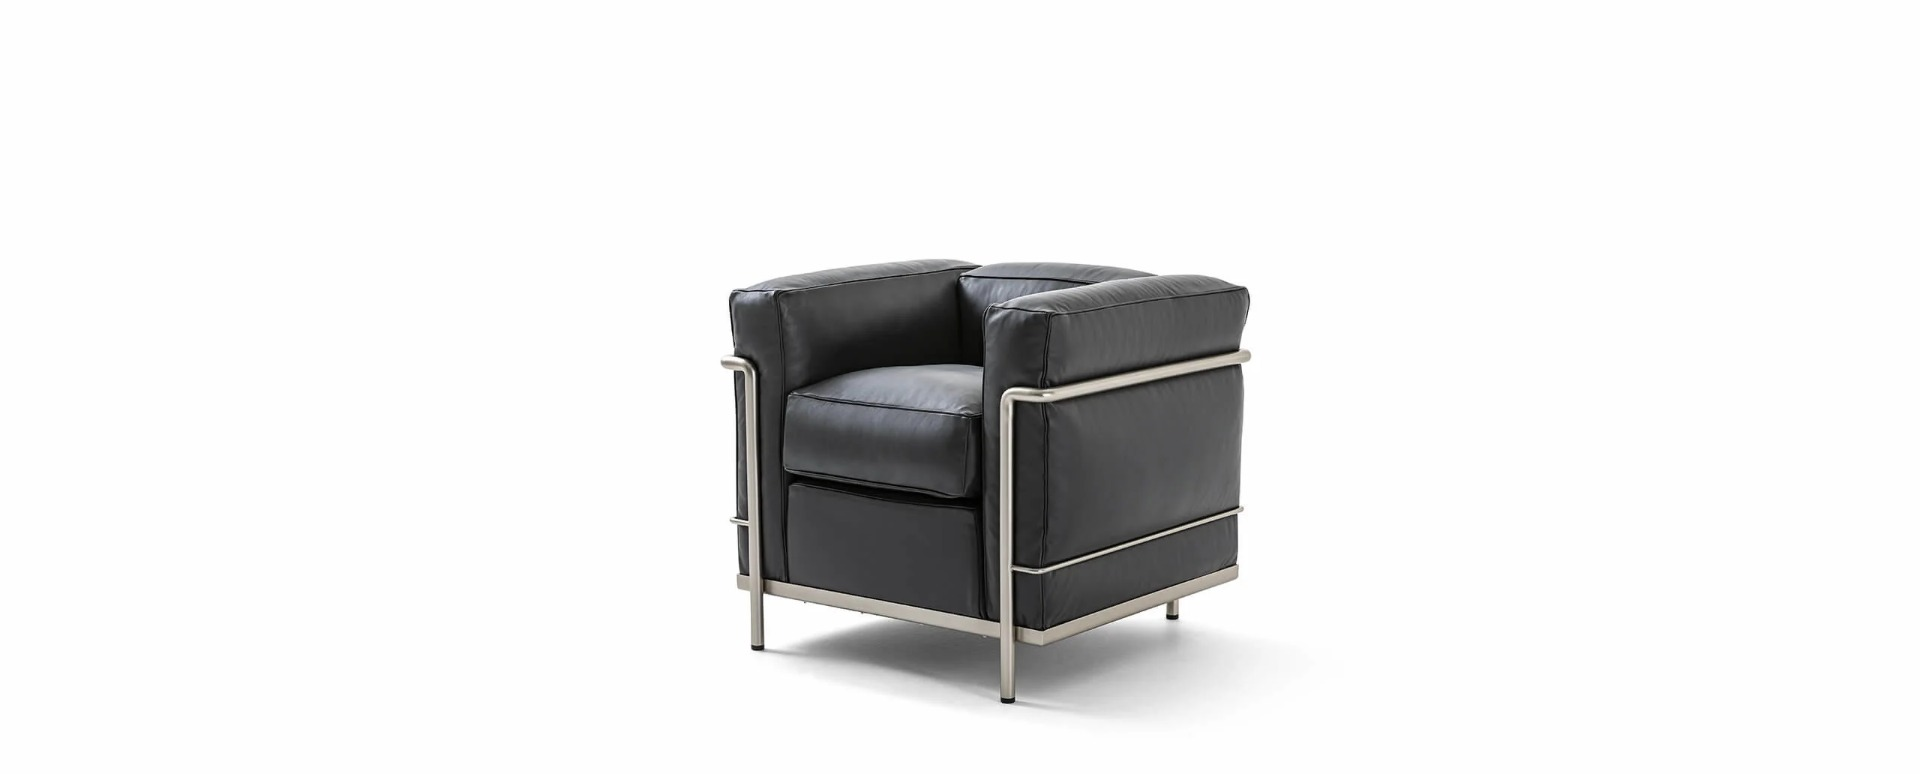 Iconic Chairs: The Top 10 Chairs Designed By Architects iconic chairs Iconic Chairs: The Top 10 Chairs Designed By Architects LC2 Chair Le Corbusier